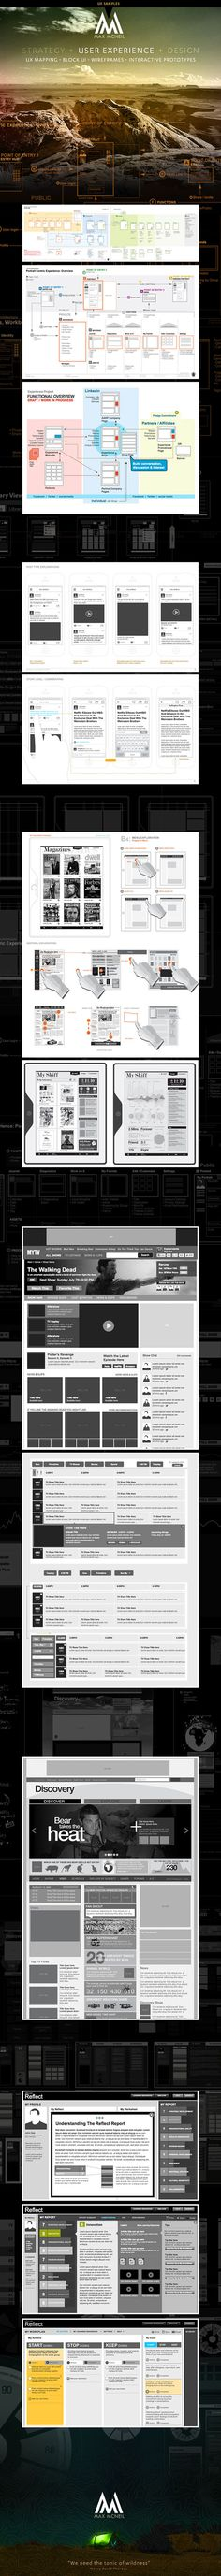 UX Samples (LinkedIn) by Max McNeil, via Behance